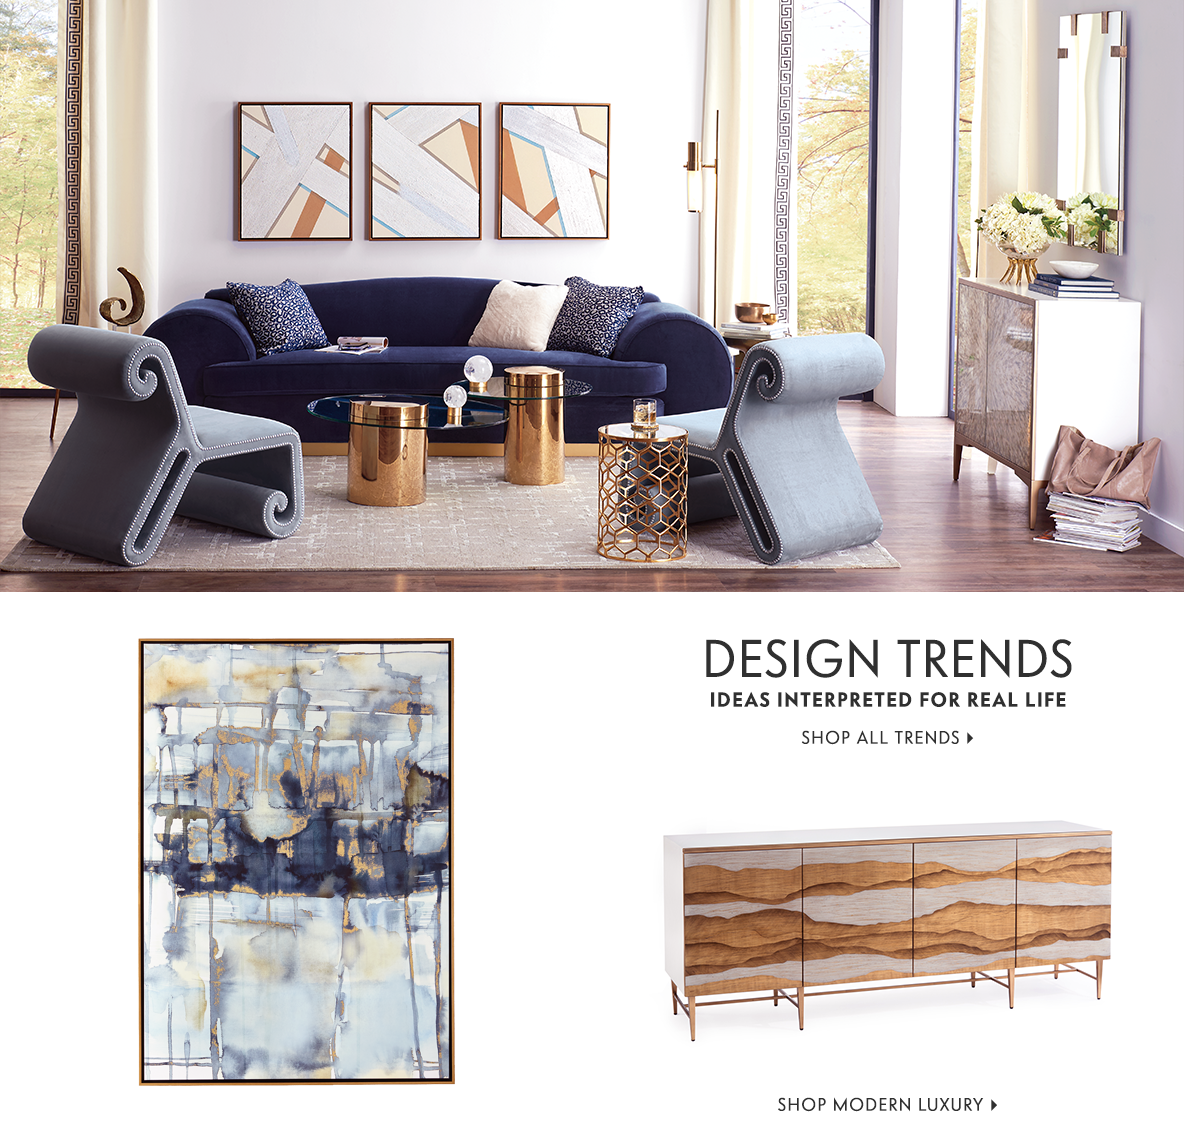 Designer Furniture and Home Dècor at Horchow